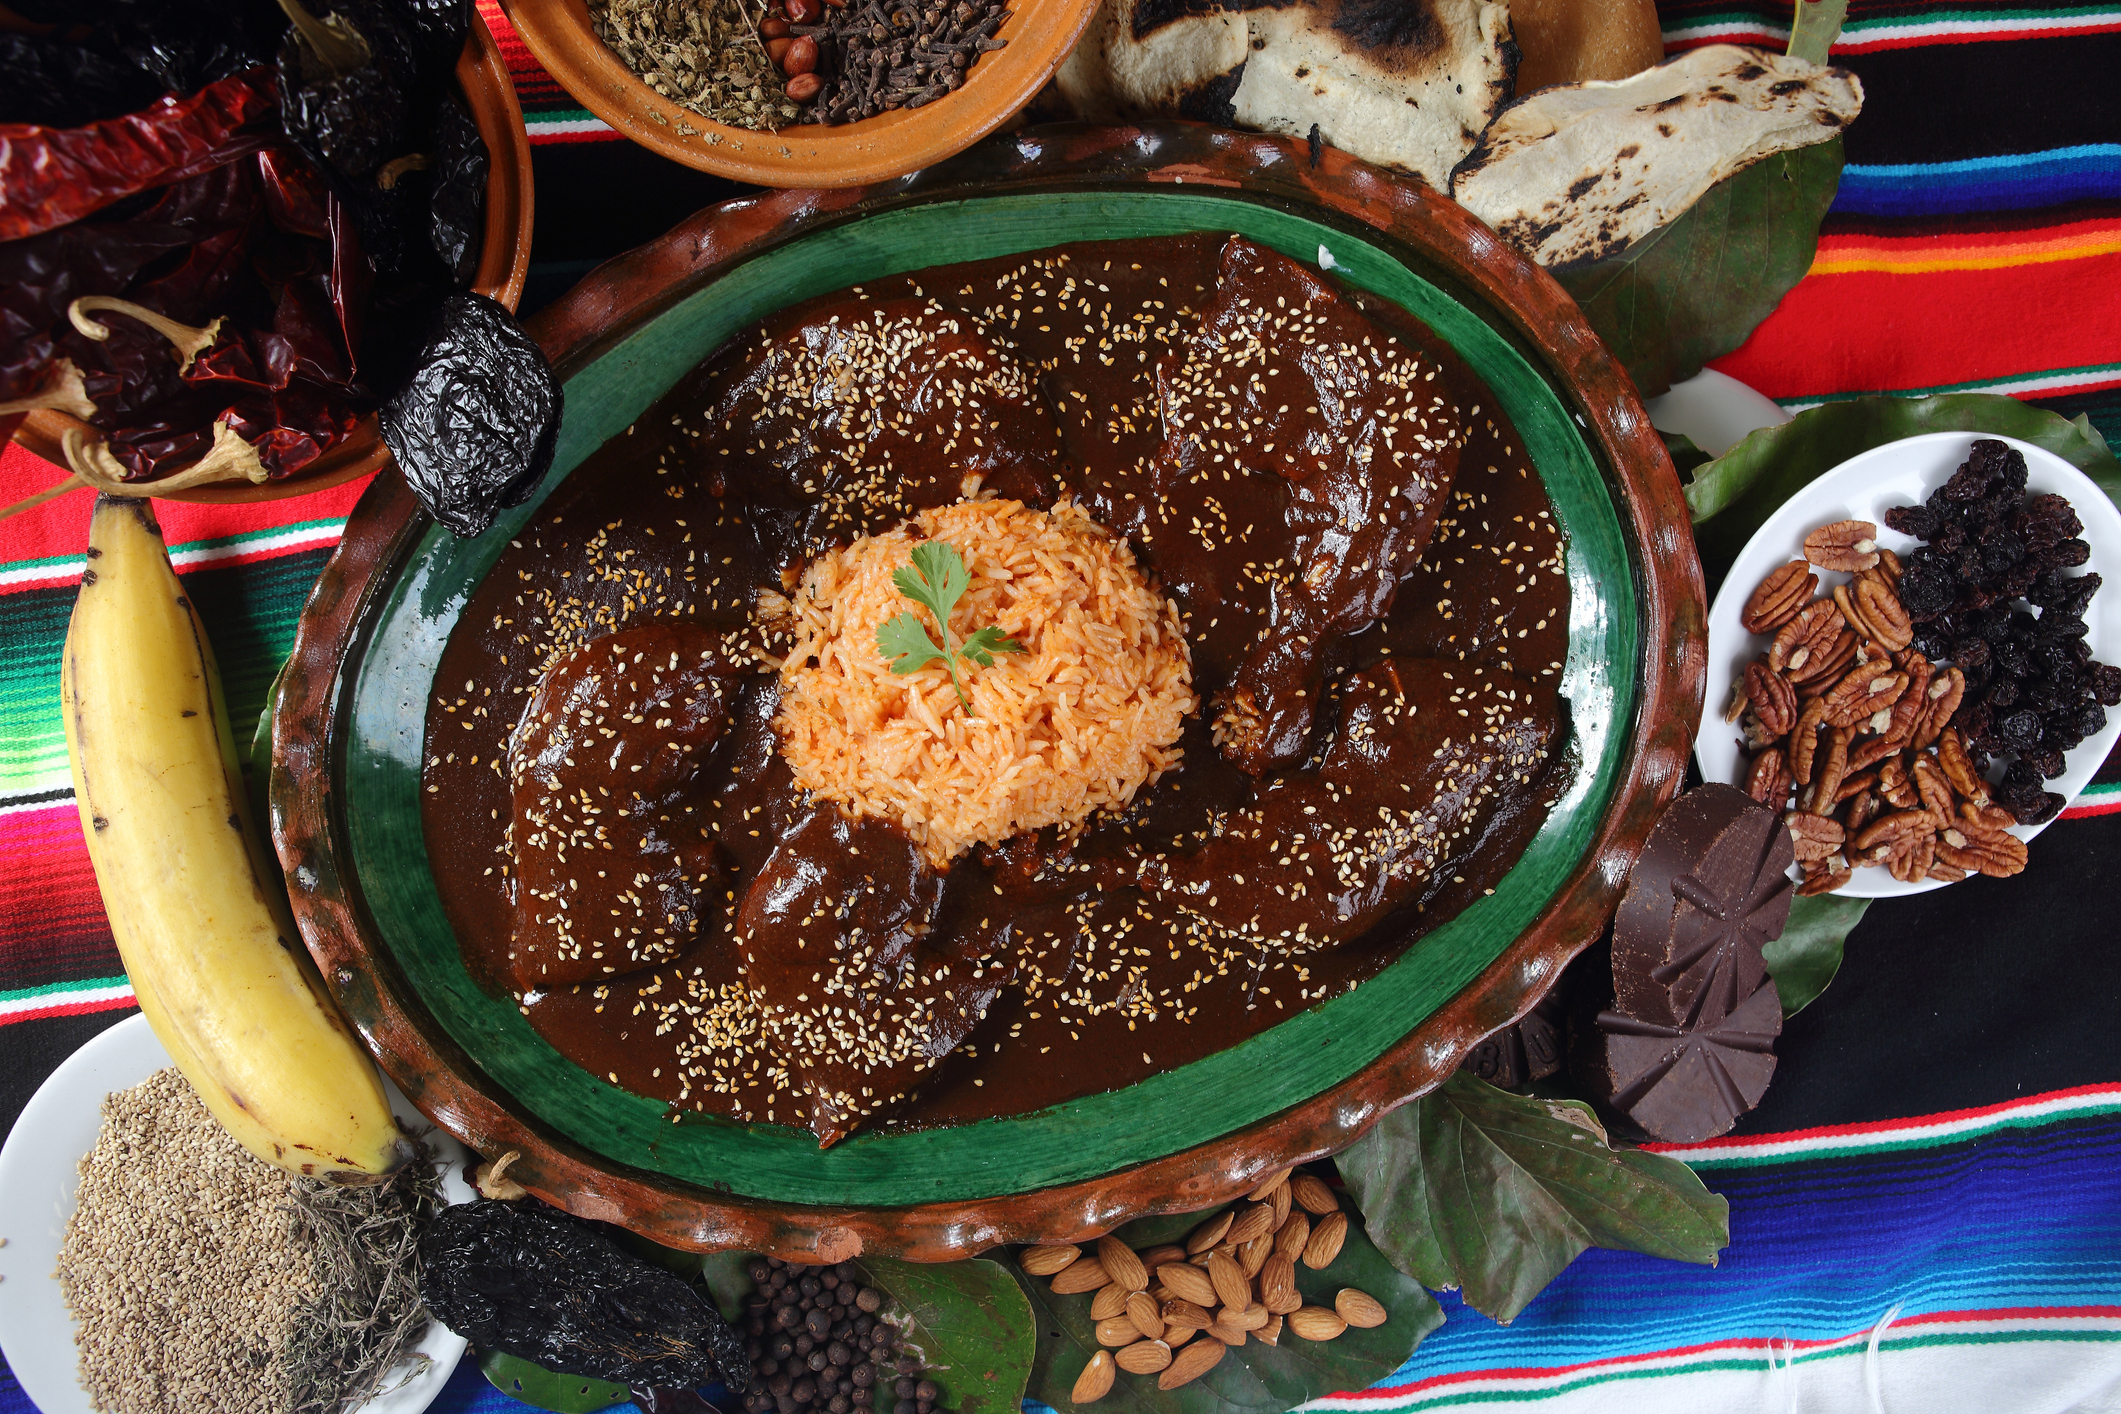 Chicken mole with sesame accompanied by steamed rice and served on clay plates.